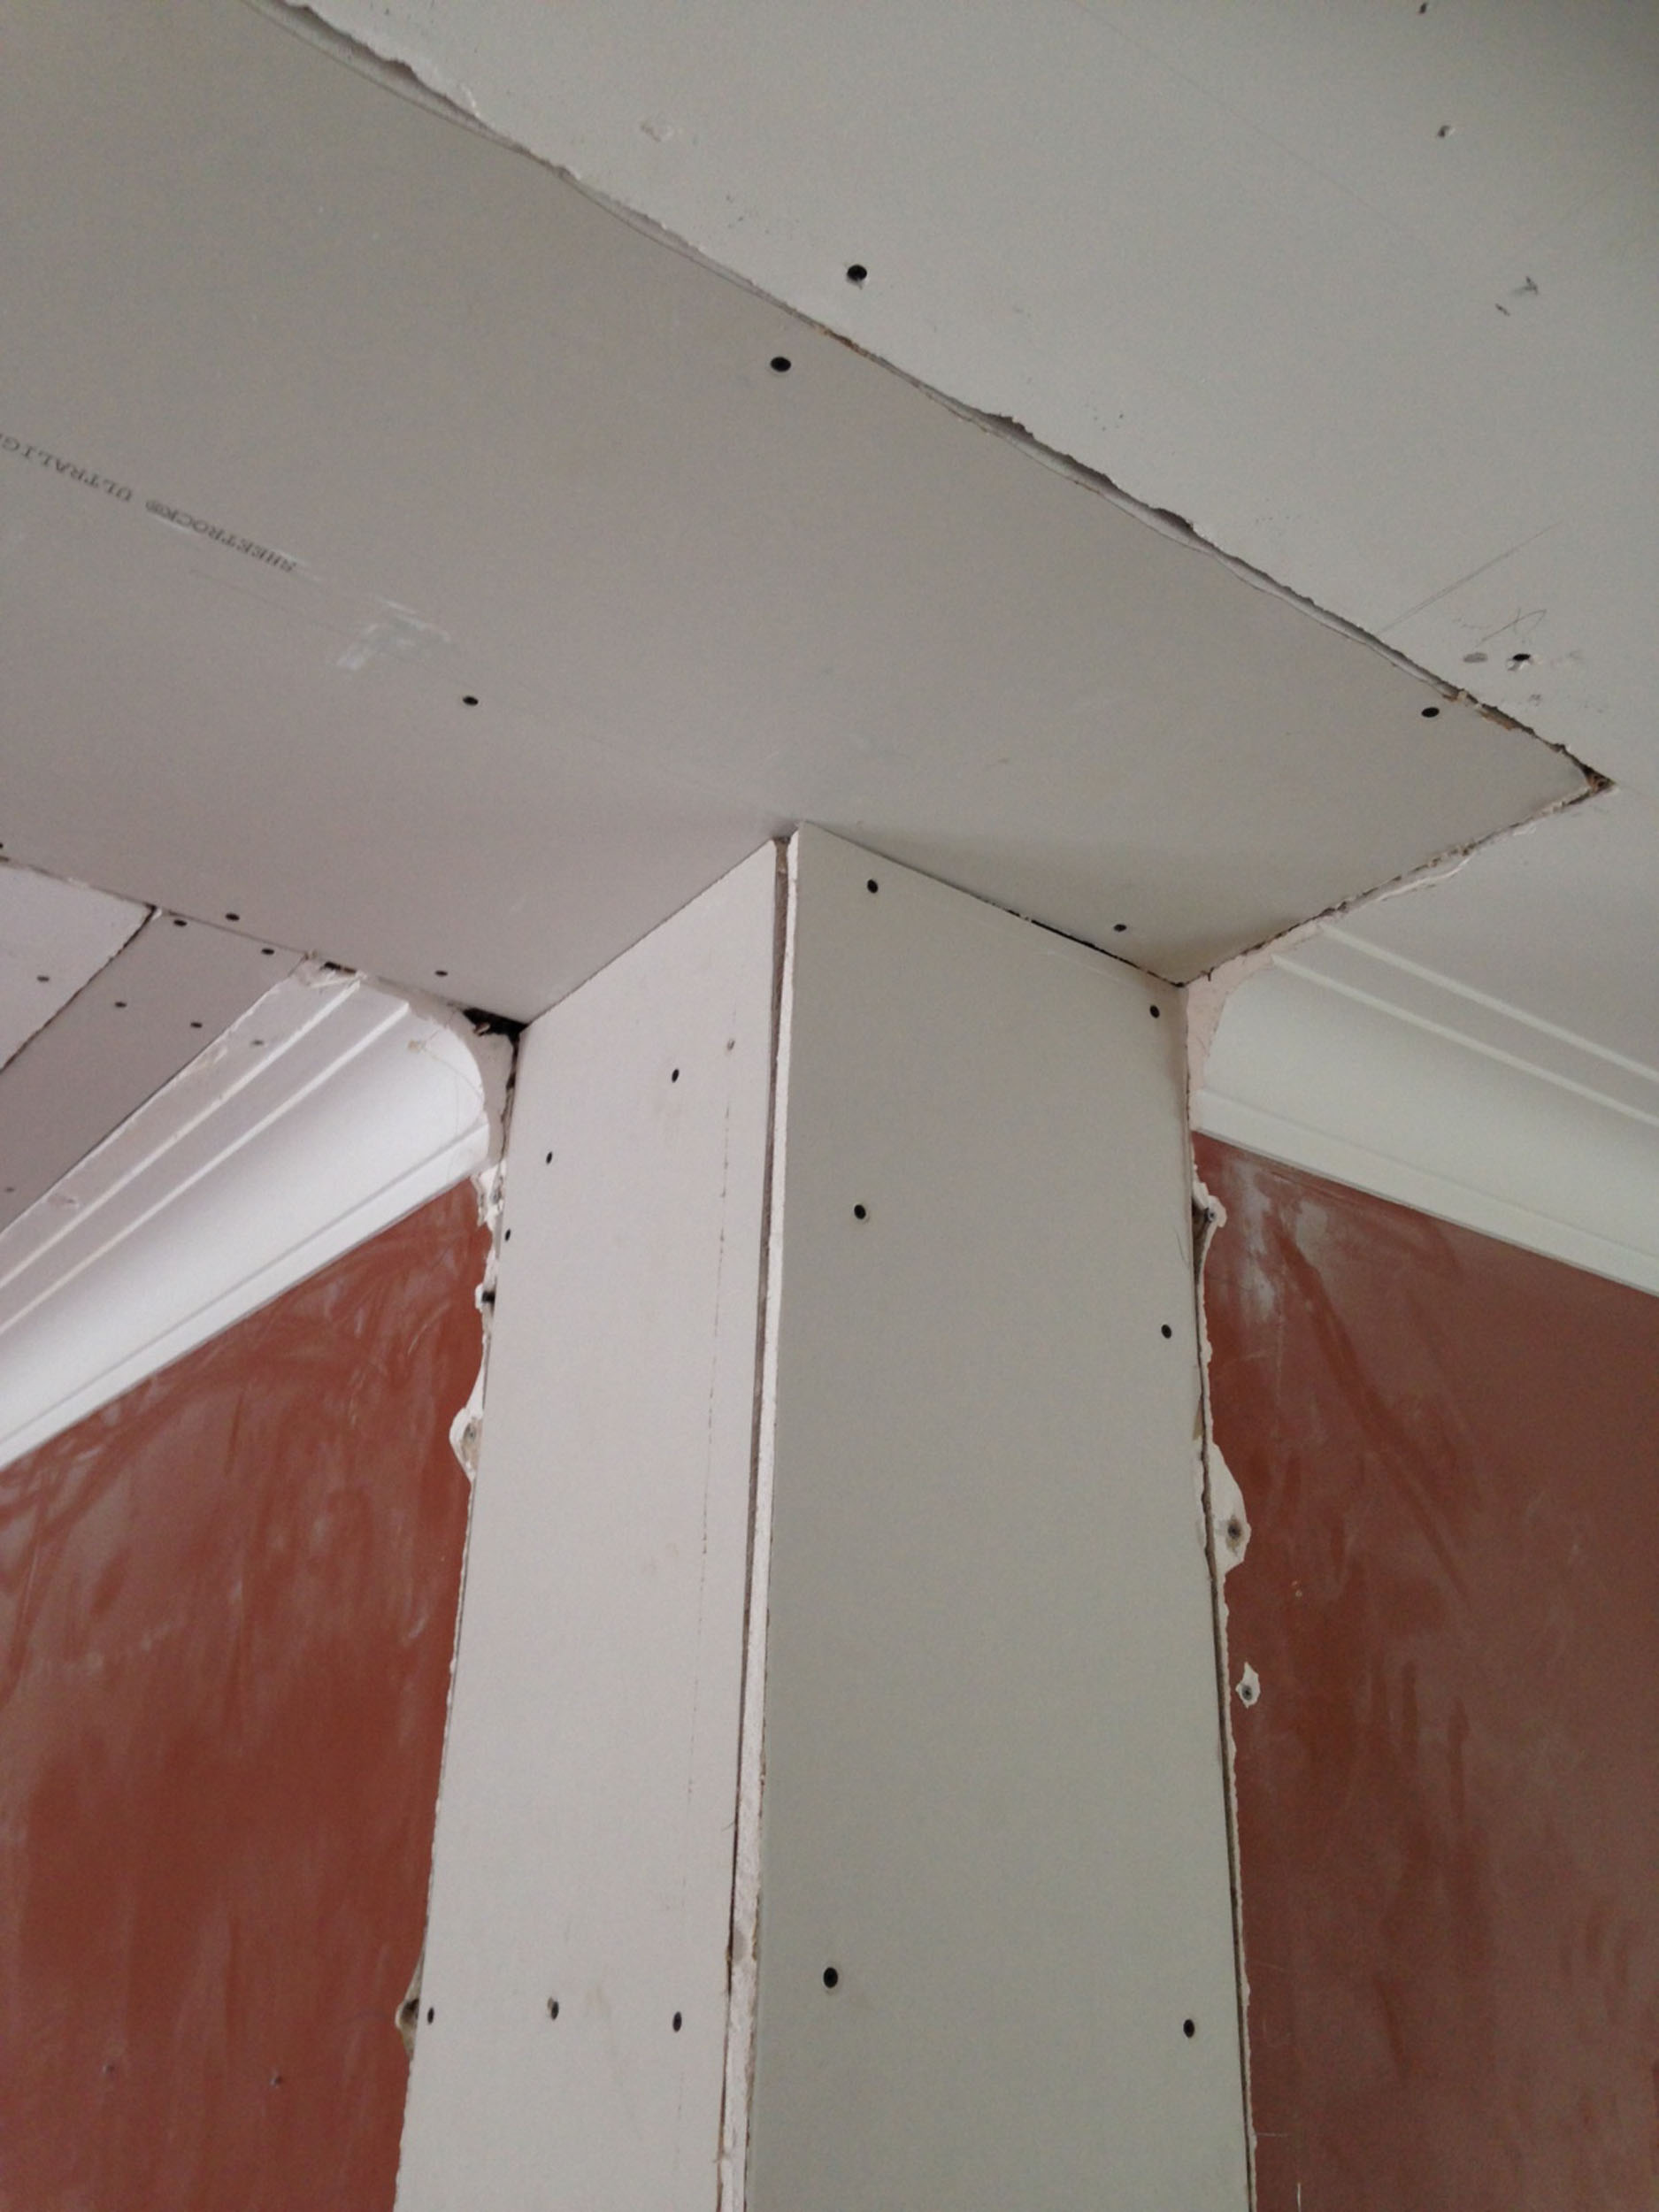 servicesrc home installation repair repairs drywall rc service clear texas services lake ceiling